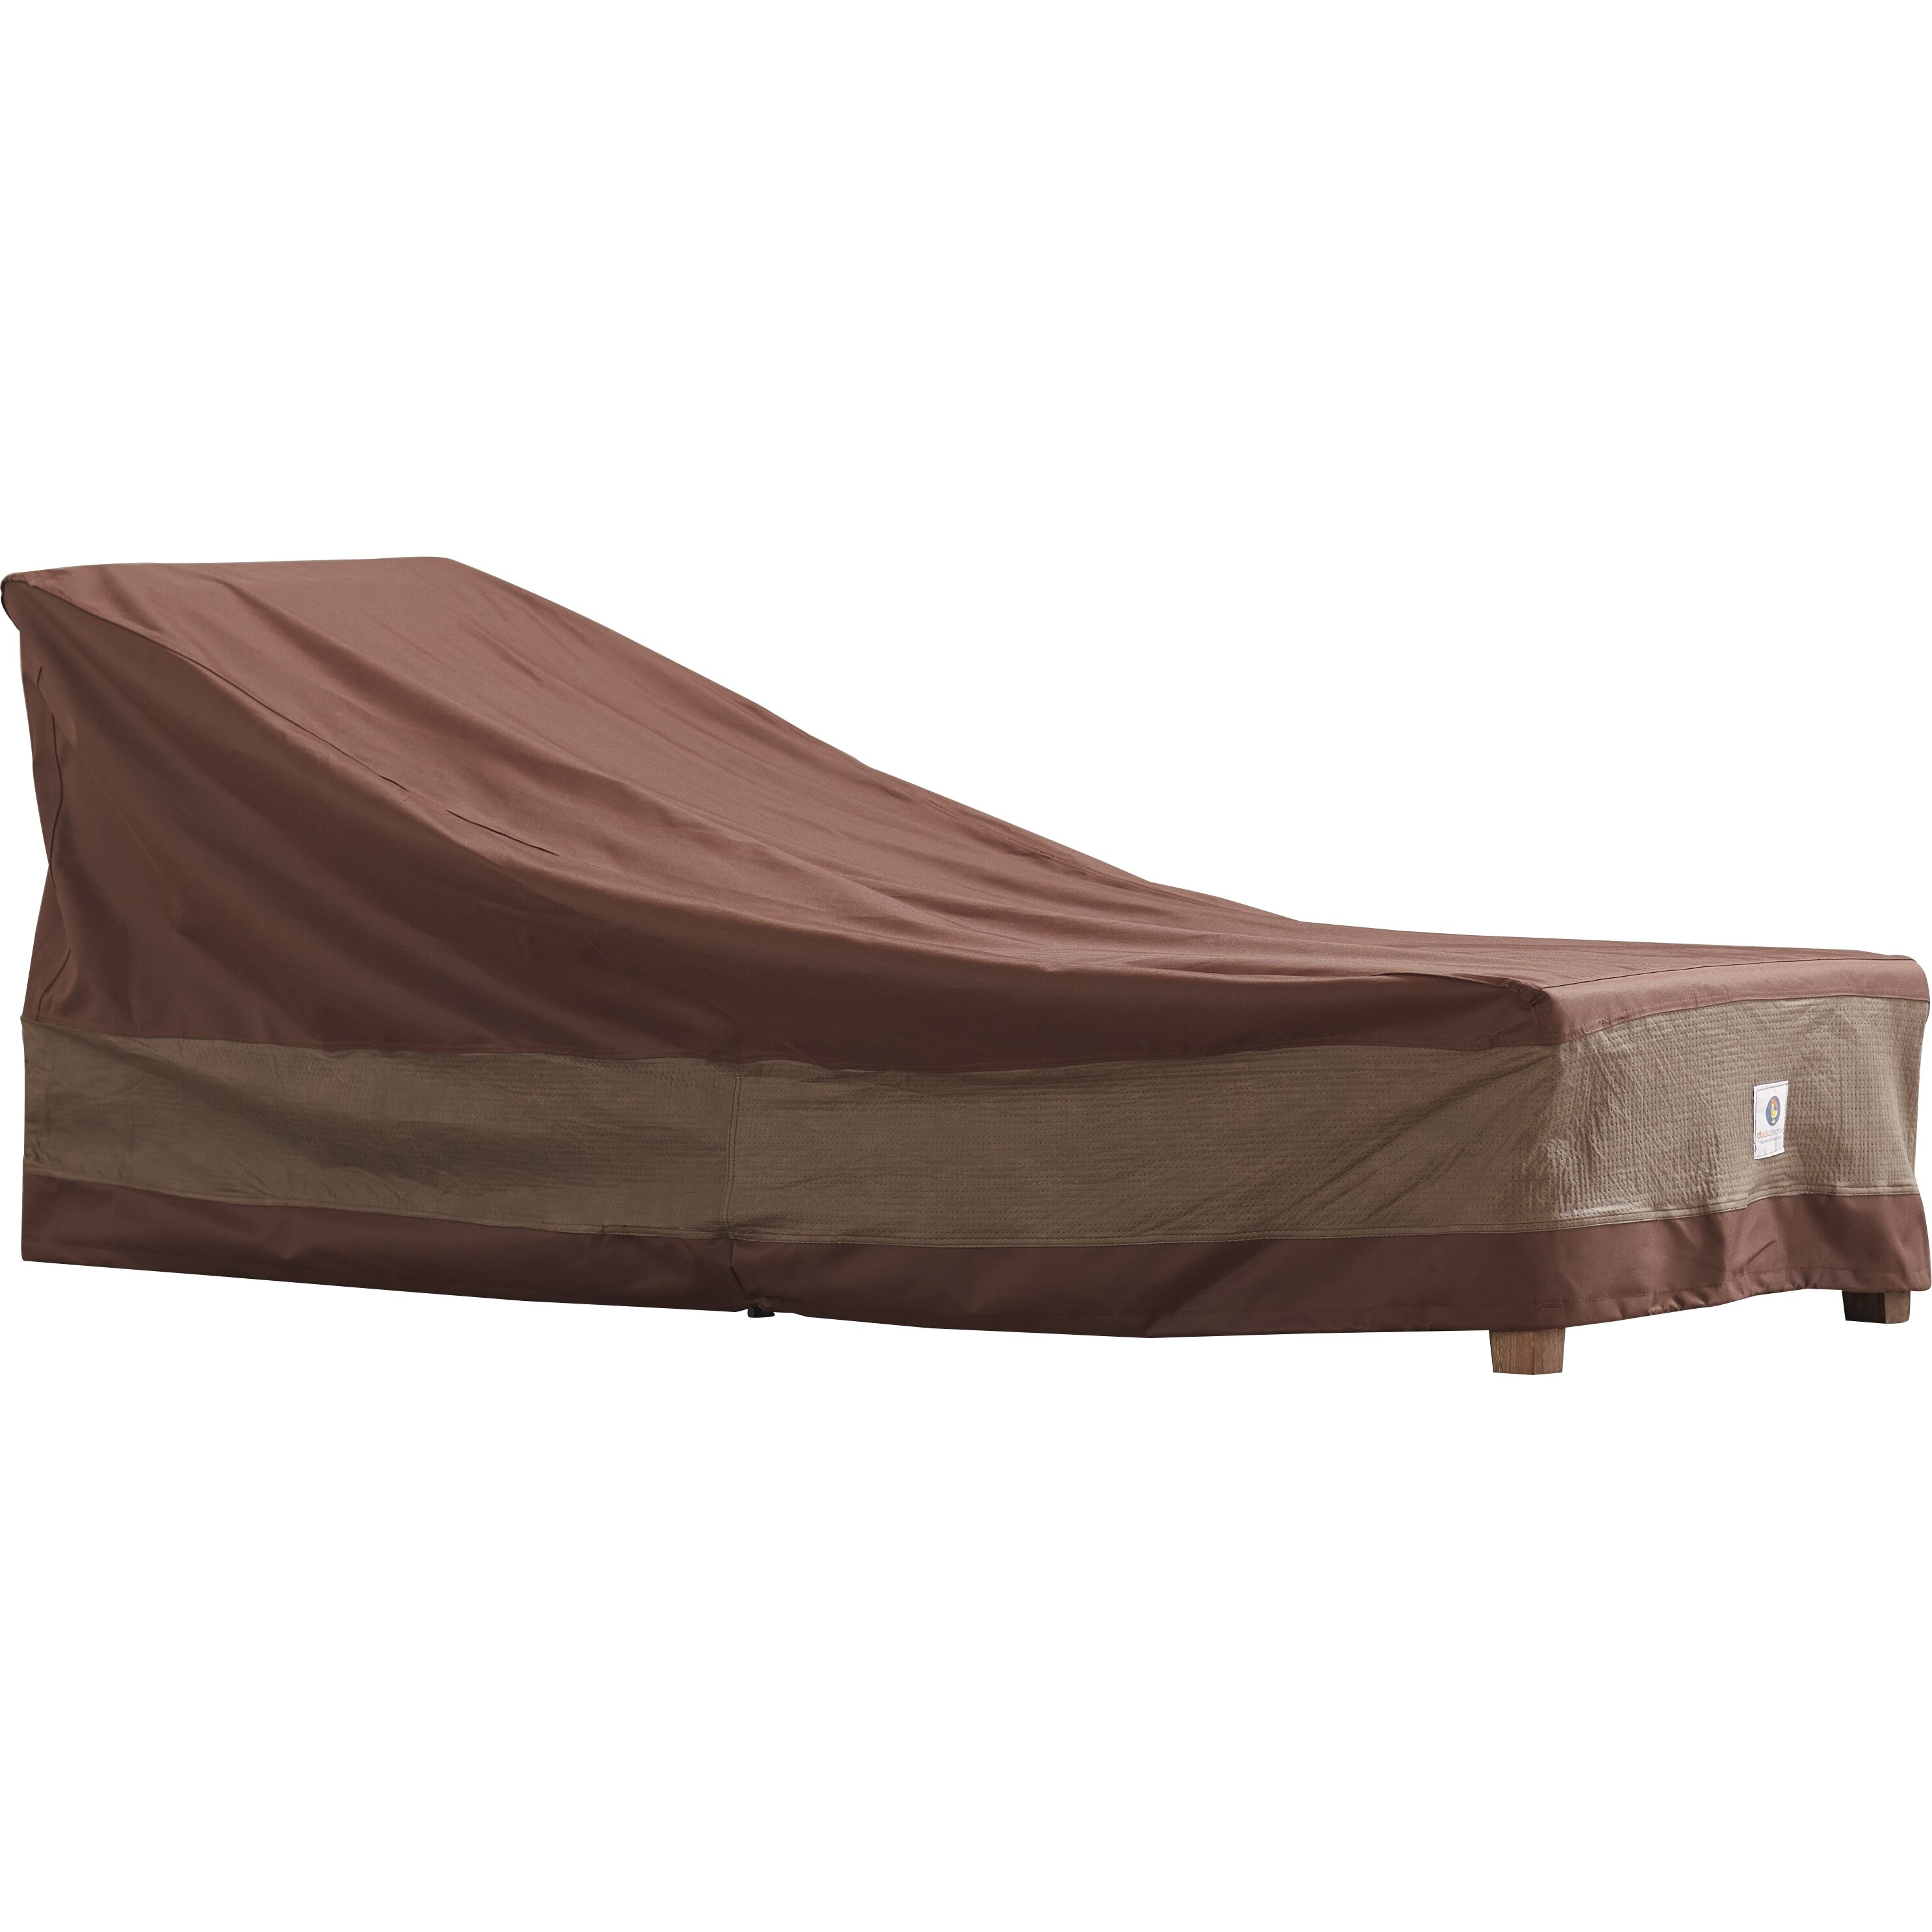 Duck covers ultimate patio chaise lounge cover reviews for Chaise lounge covers outdoor